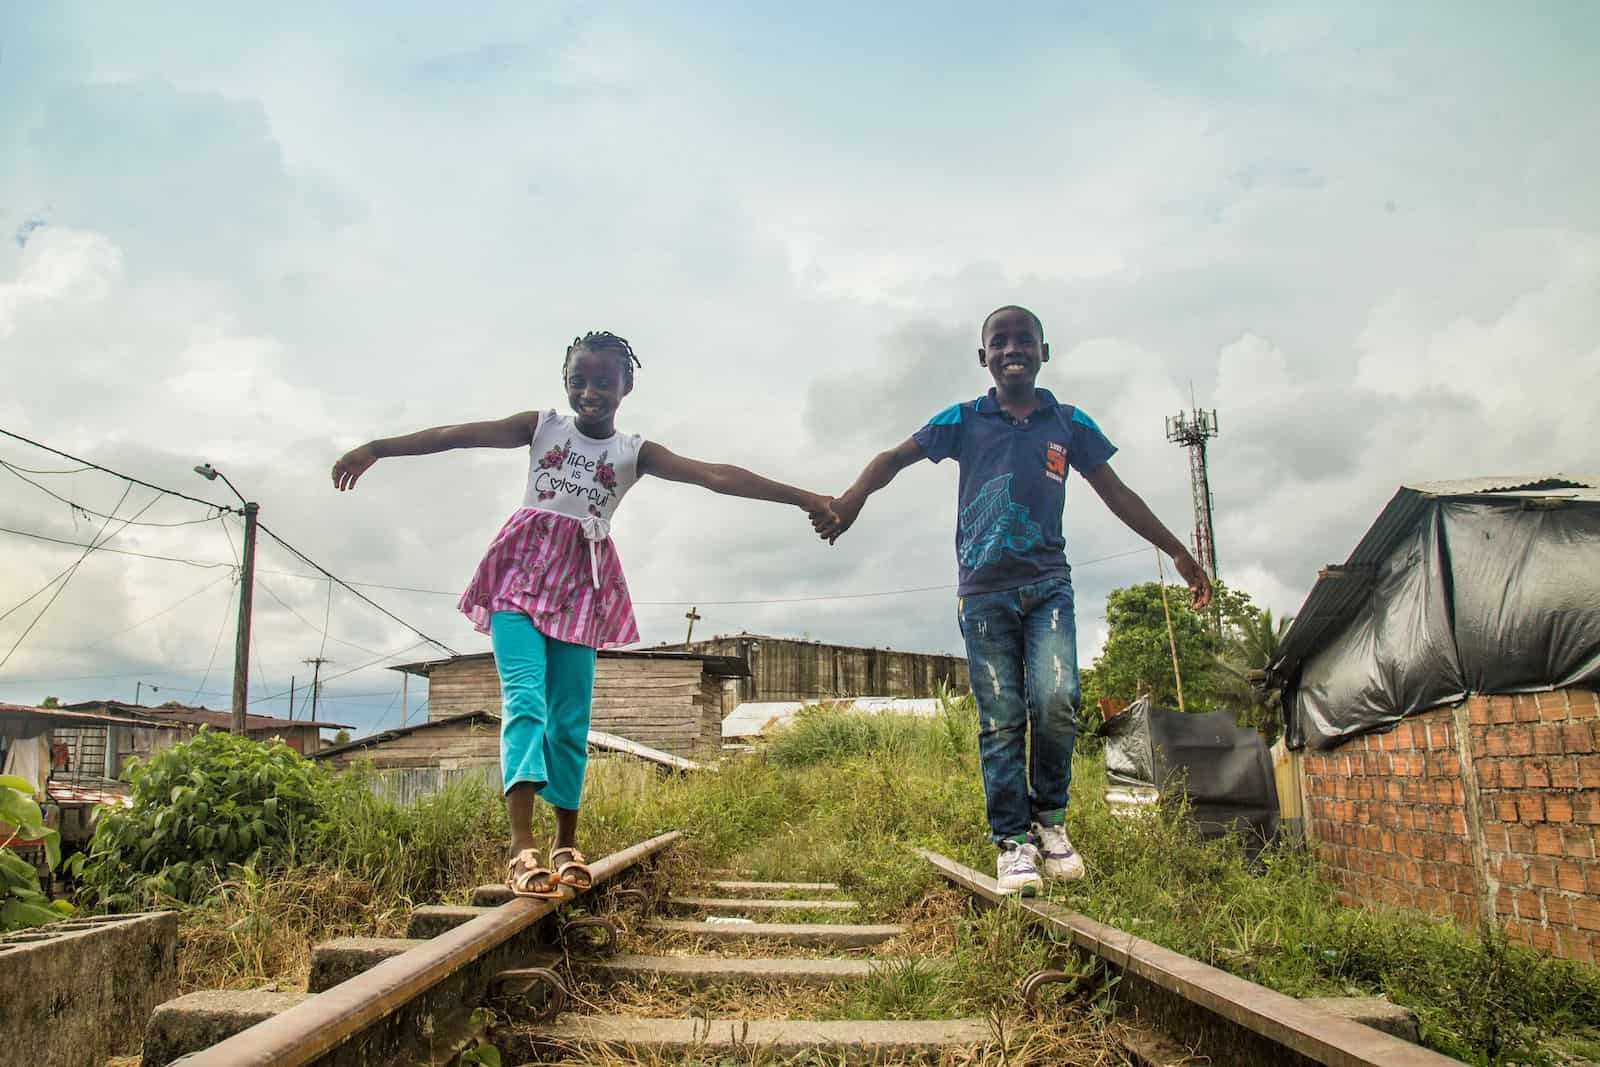 Two children holding hand walking along railroad tracks